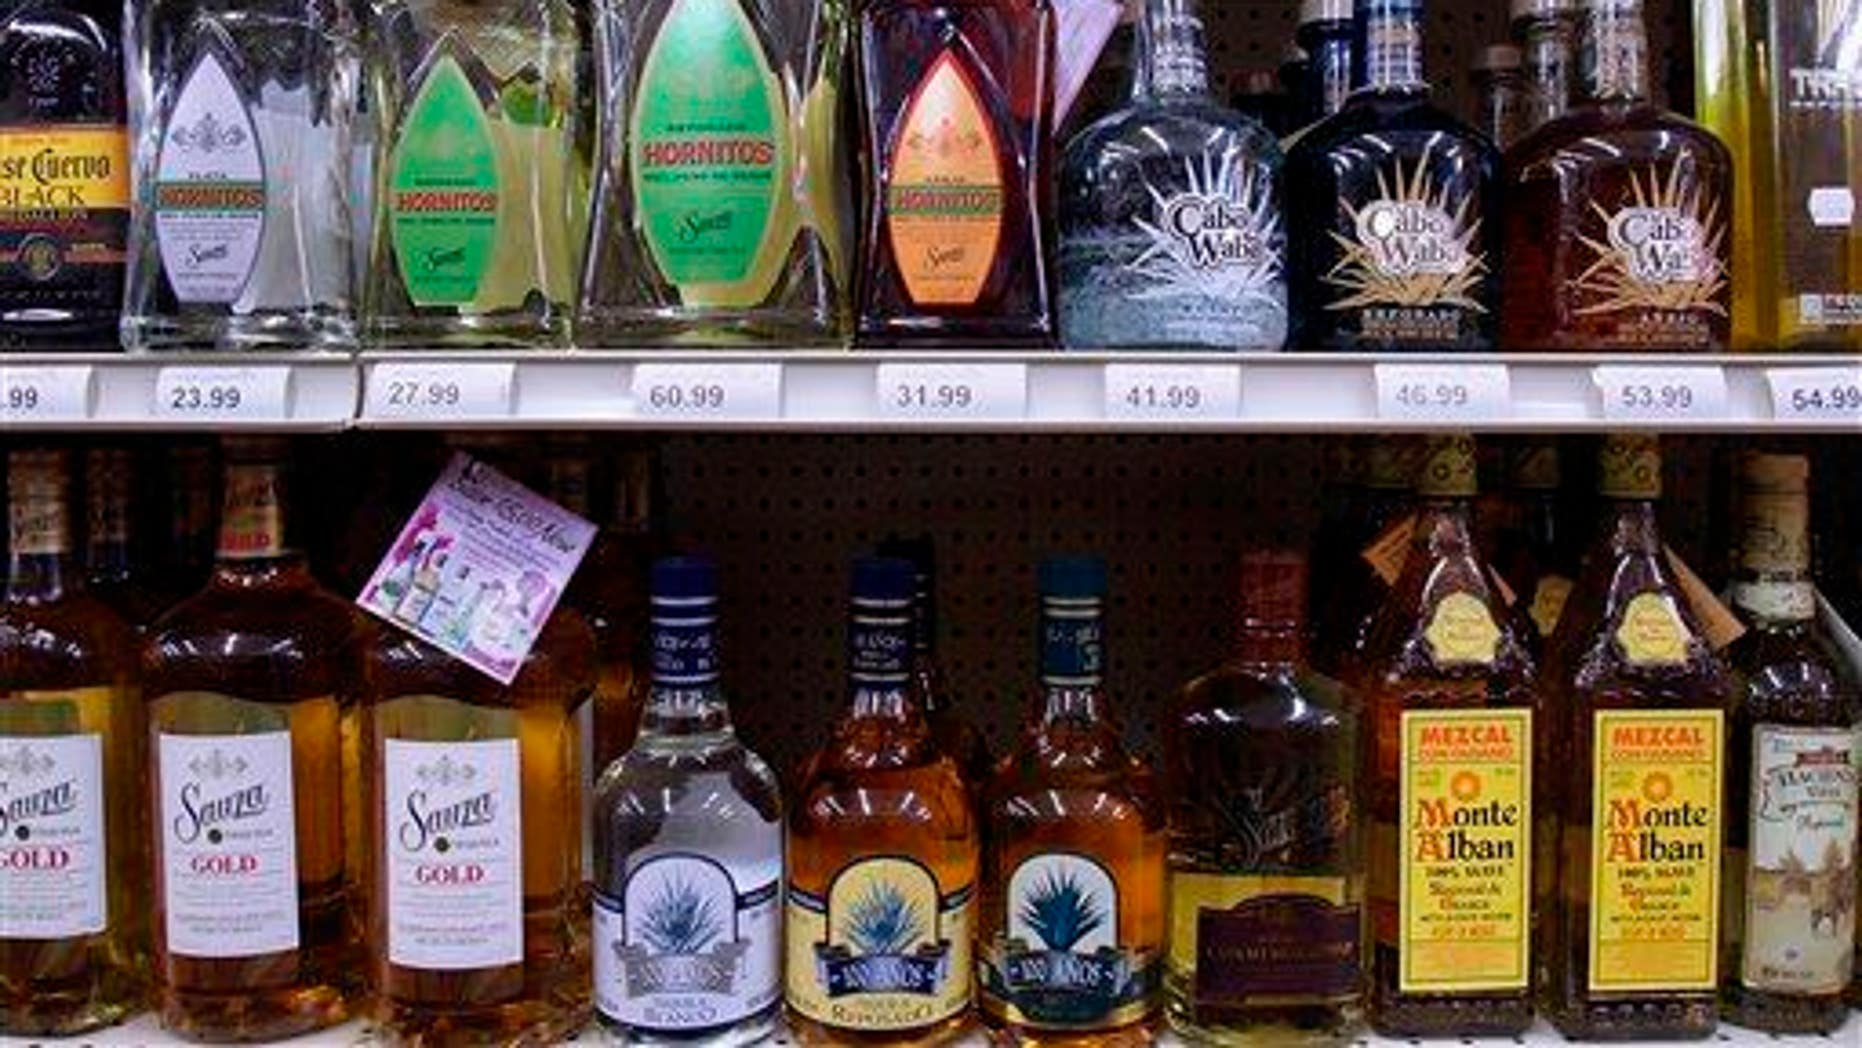 In this Monday, Aug. 31, 2009 file photo, bottles of alcohol are seen lining the shelves of a liquor store in Springfield, Ill. It's the time of year that social host liability laws can leave parents vulnerable for teens drinking under their roofs.